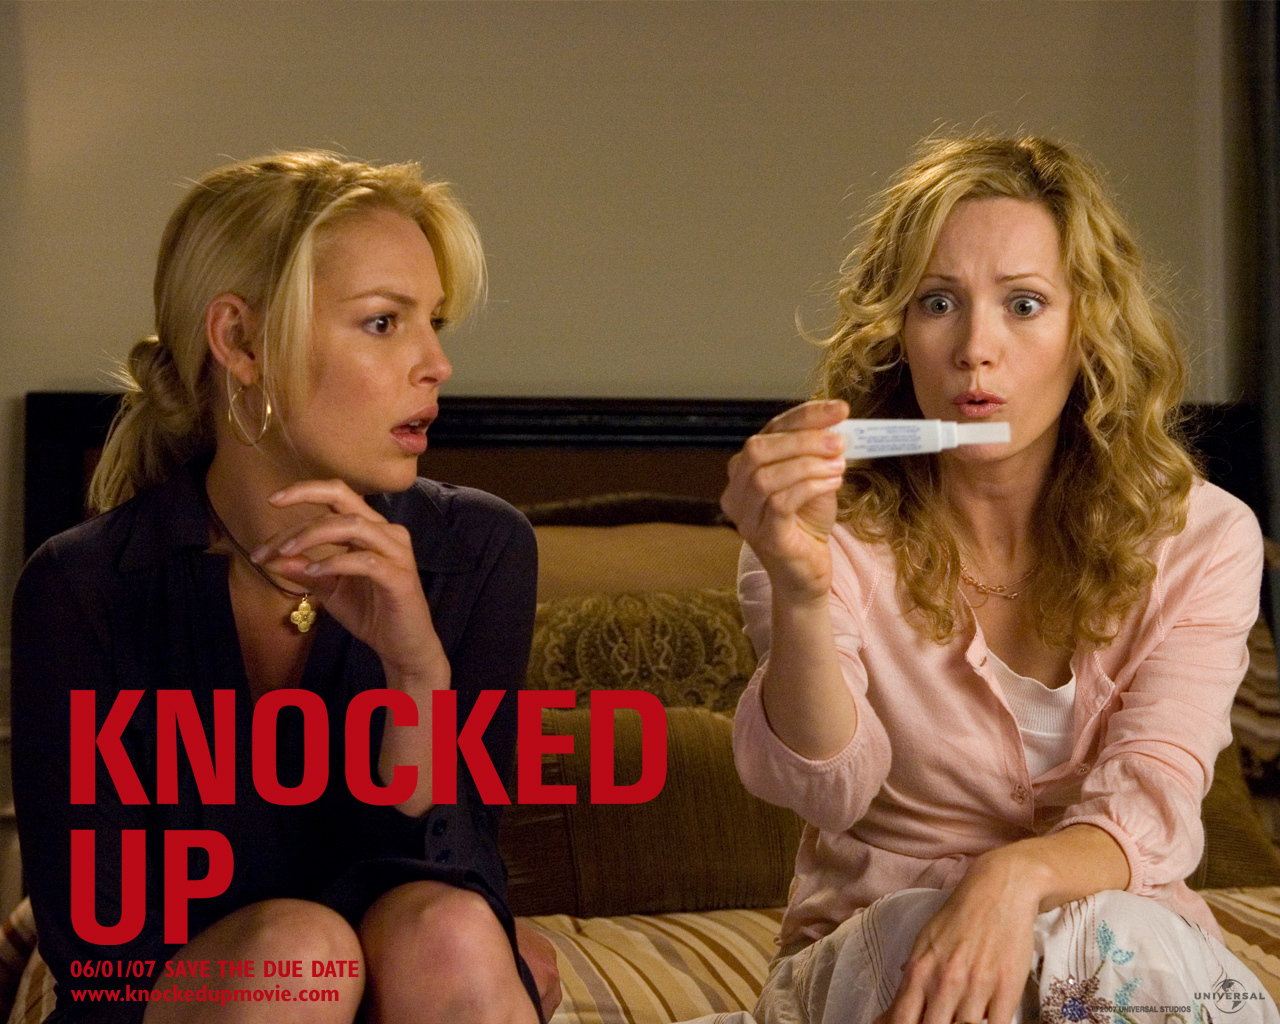 Knocked Up Wallpapers, Screen Savers, Videos, Pictures ...